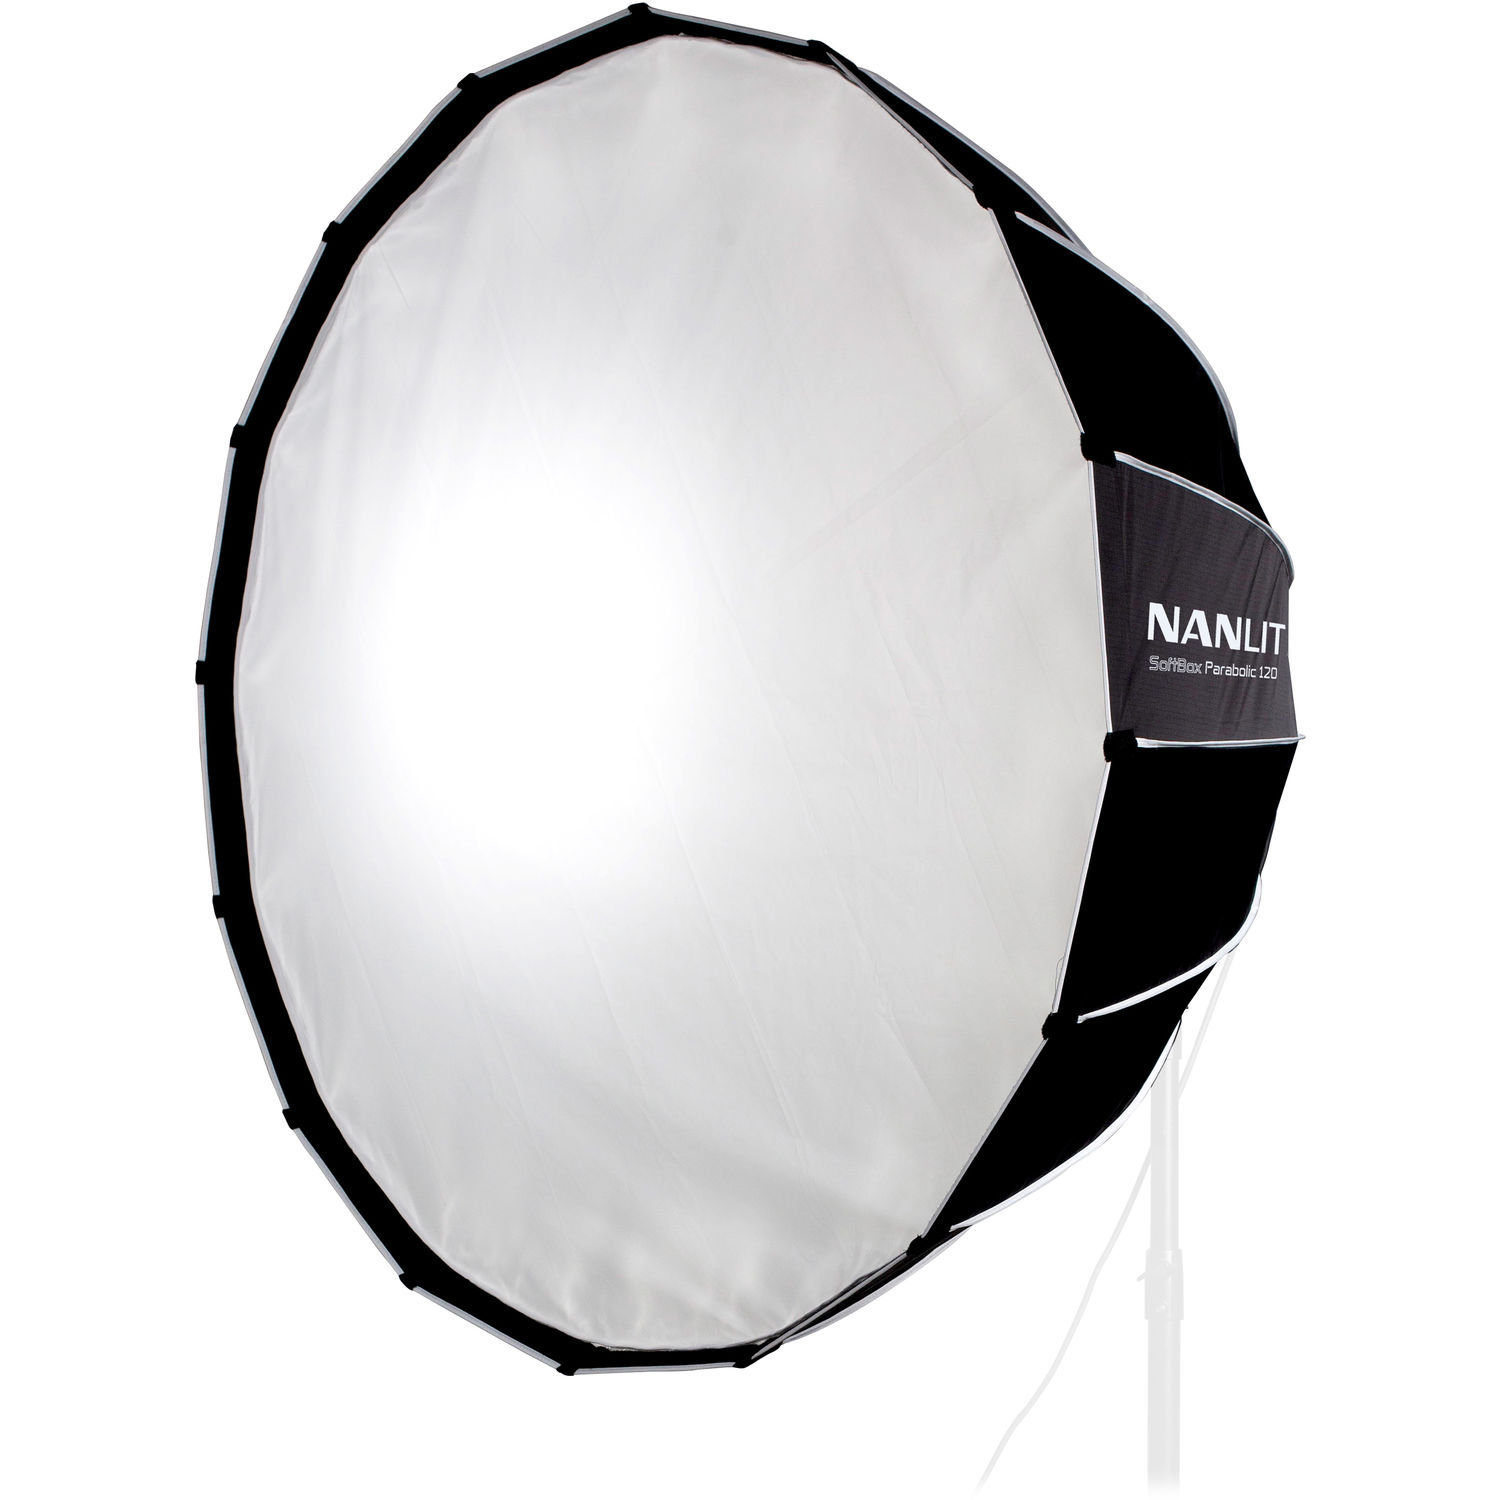 Nanlite SB-PR-120 Hexa Parabolic Light Dome Softbox Bowens Mount